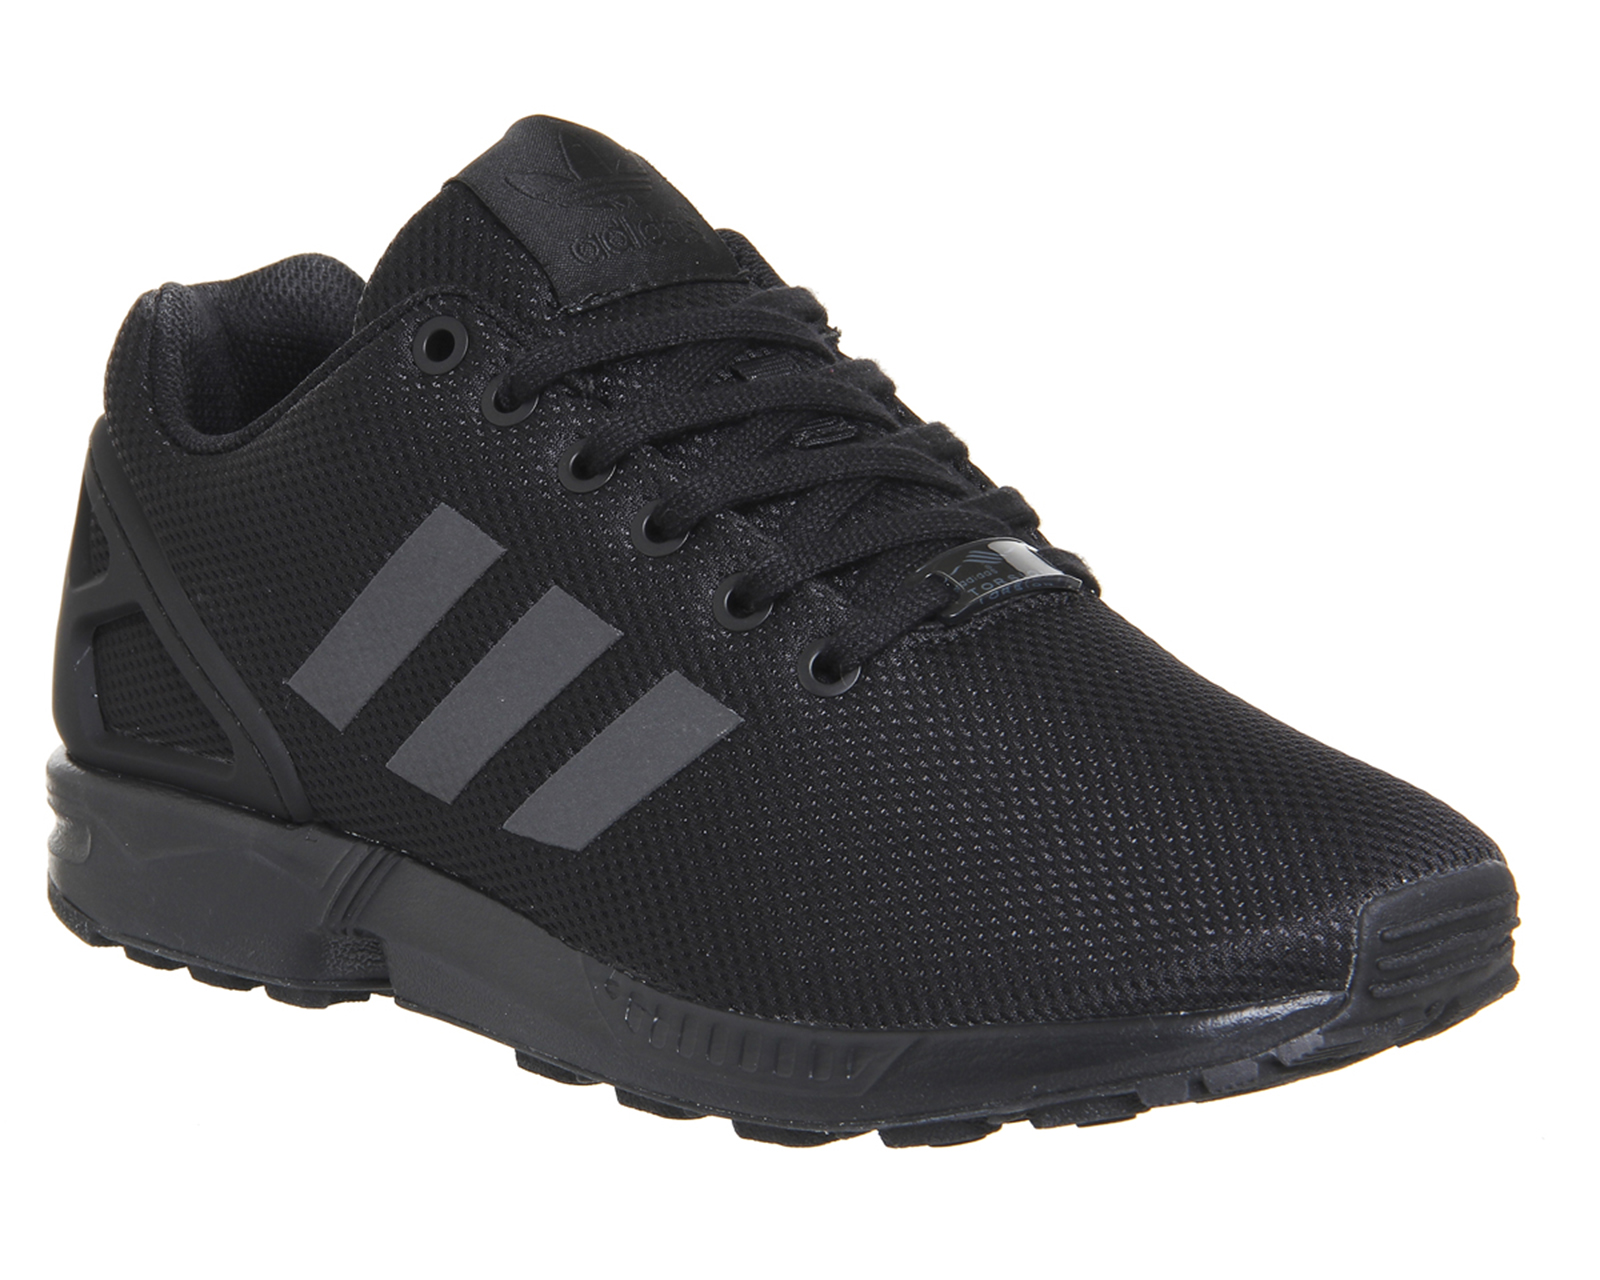 Men's cross training shoes are designed to provide support and cushioning through a range of different activities. A good pair of men's cross trainers are the most versatile sneakers you can own. Cross training shoes provide arch support, padding and impact .